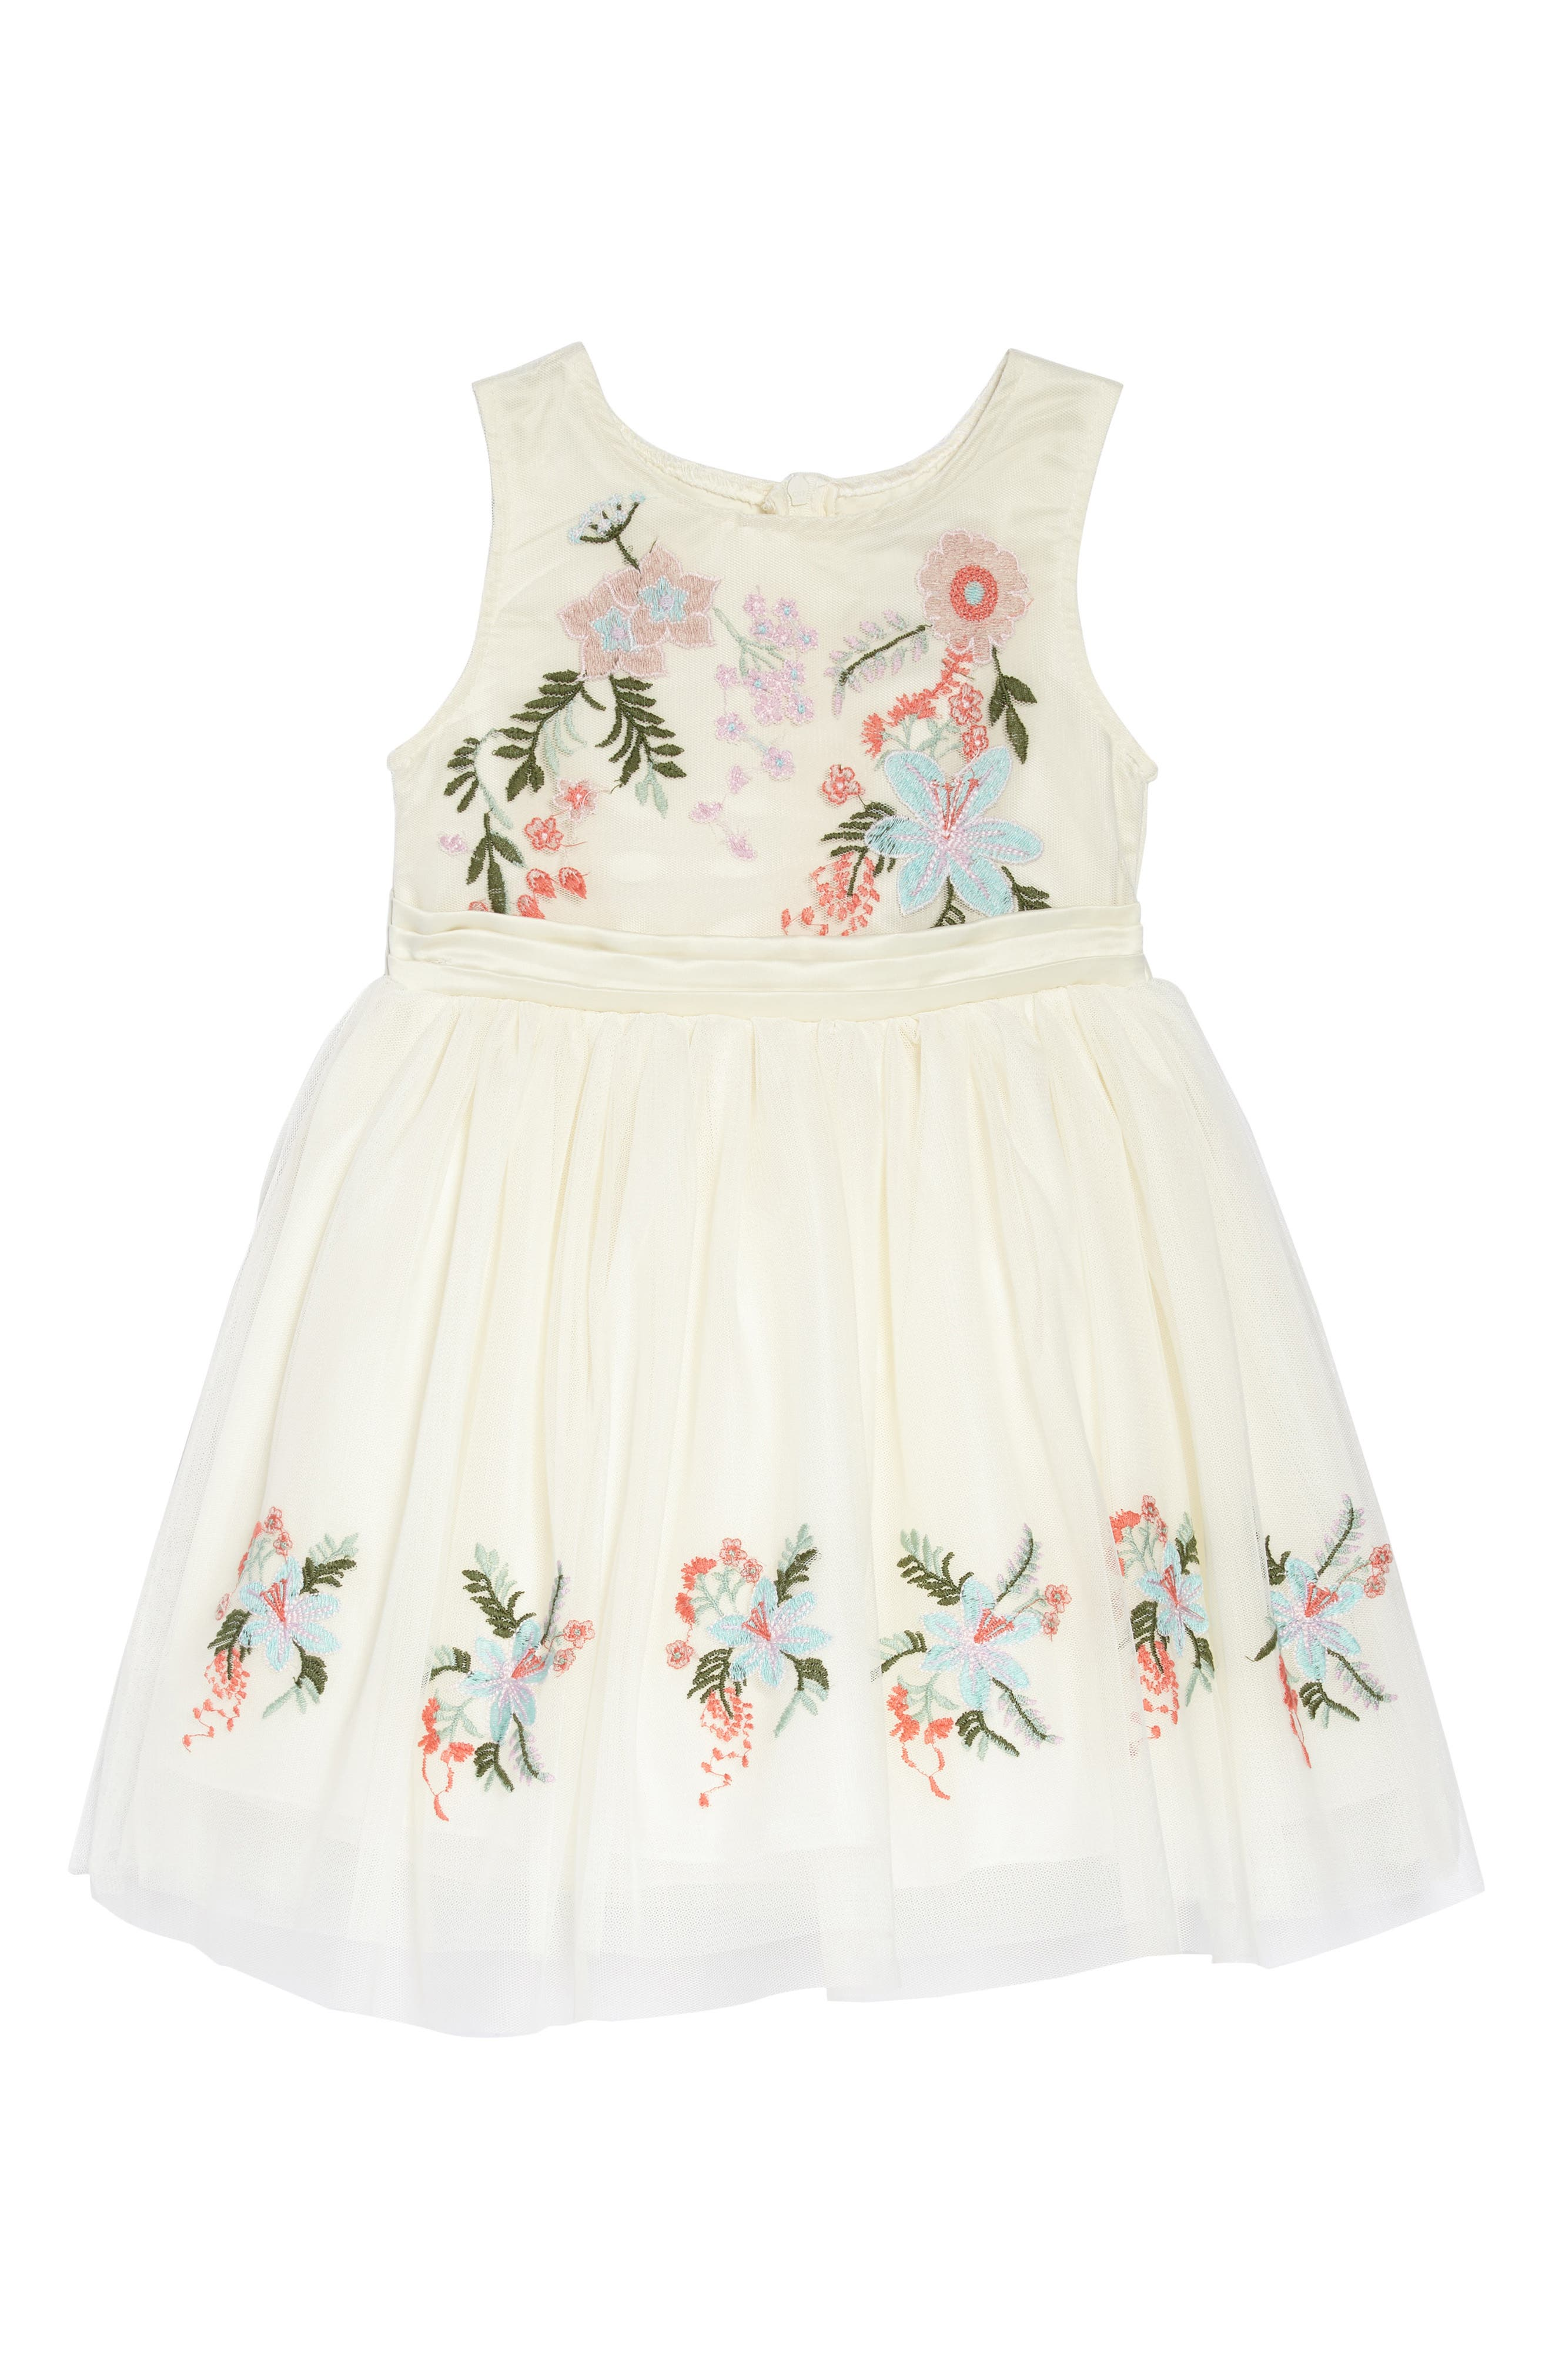 Flower Embroidered Party Dress,                             Main thumbnail 1, color,                             900